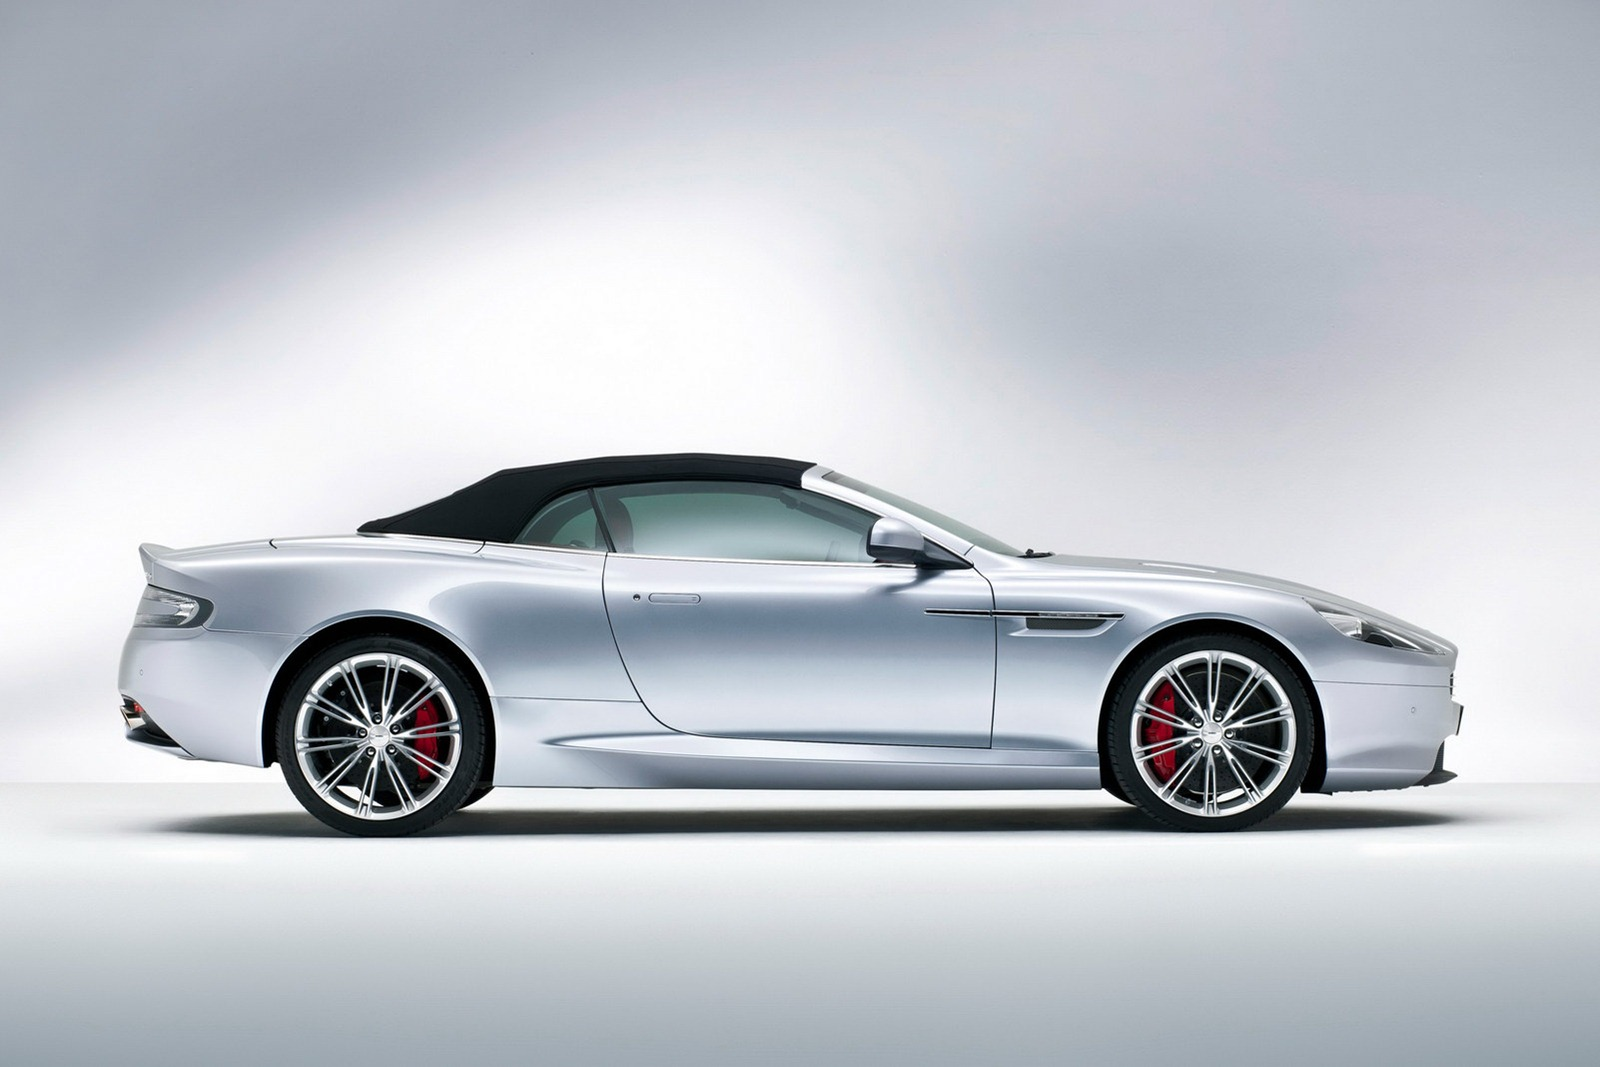 Aston_Martin_DB9_Volante_2013_Side_Roof-Up